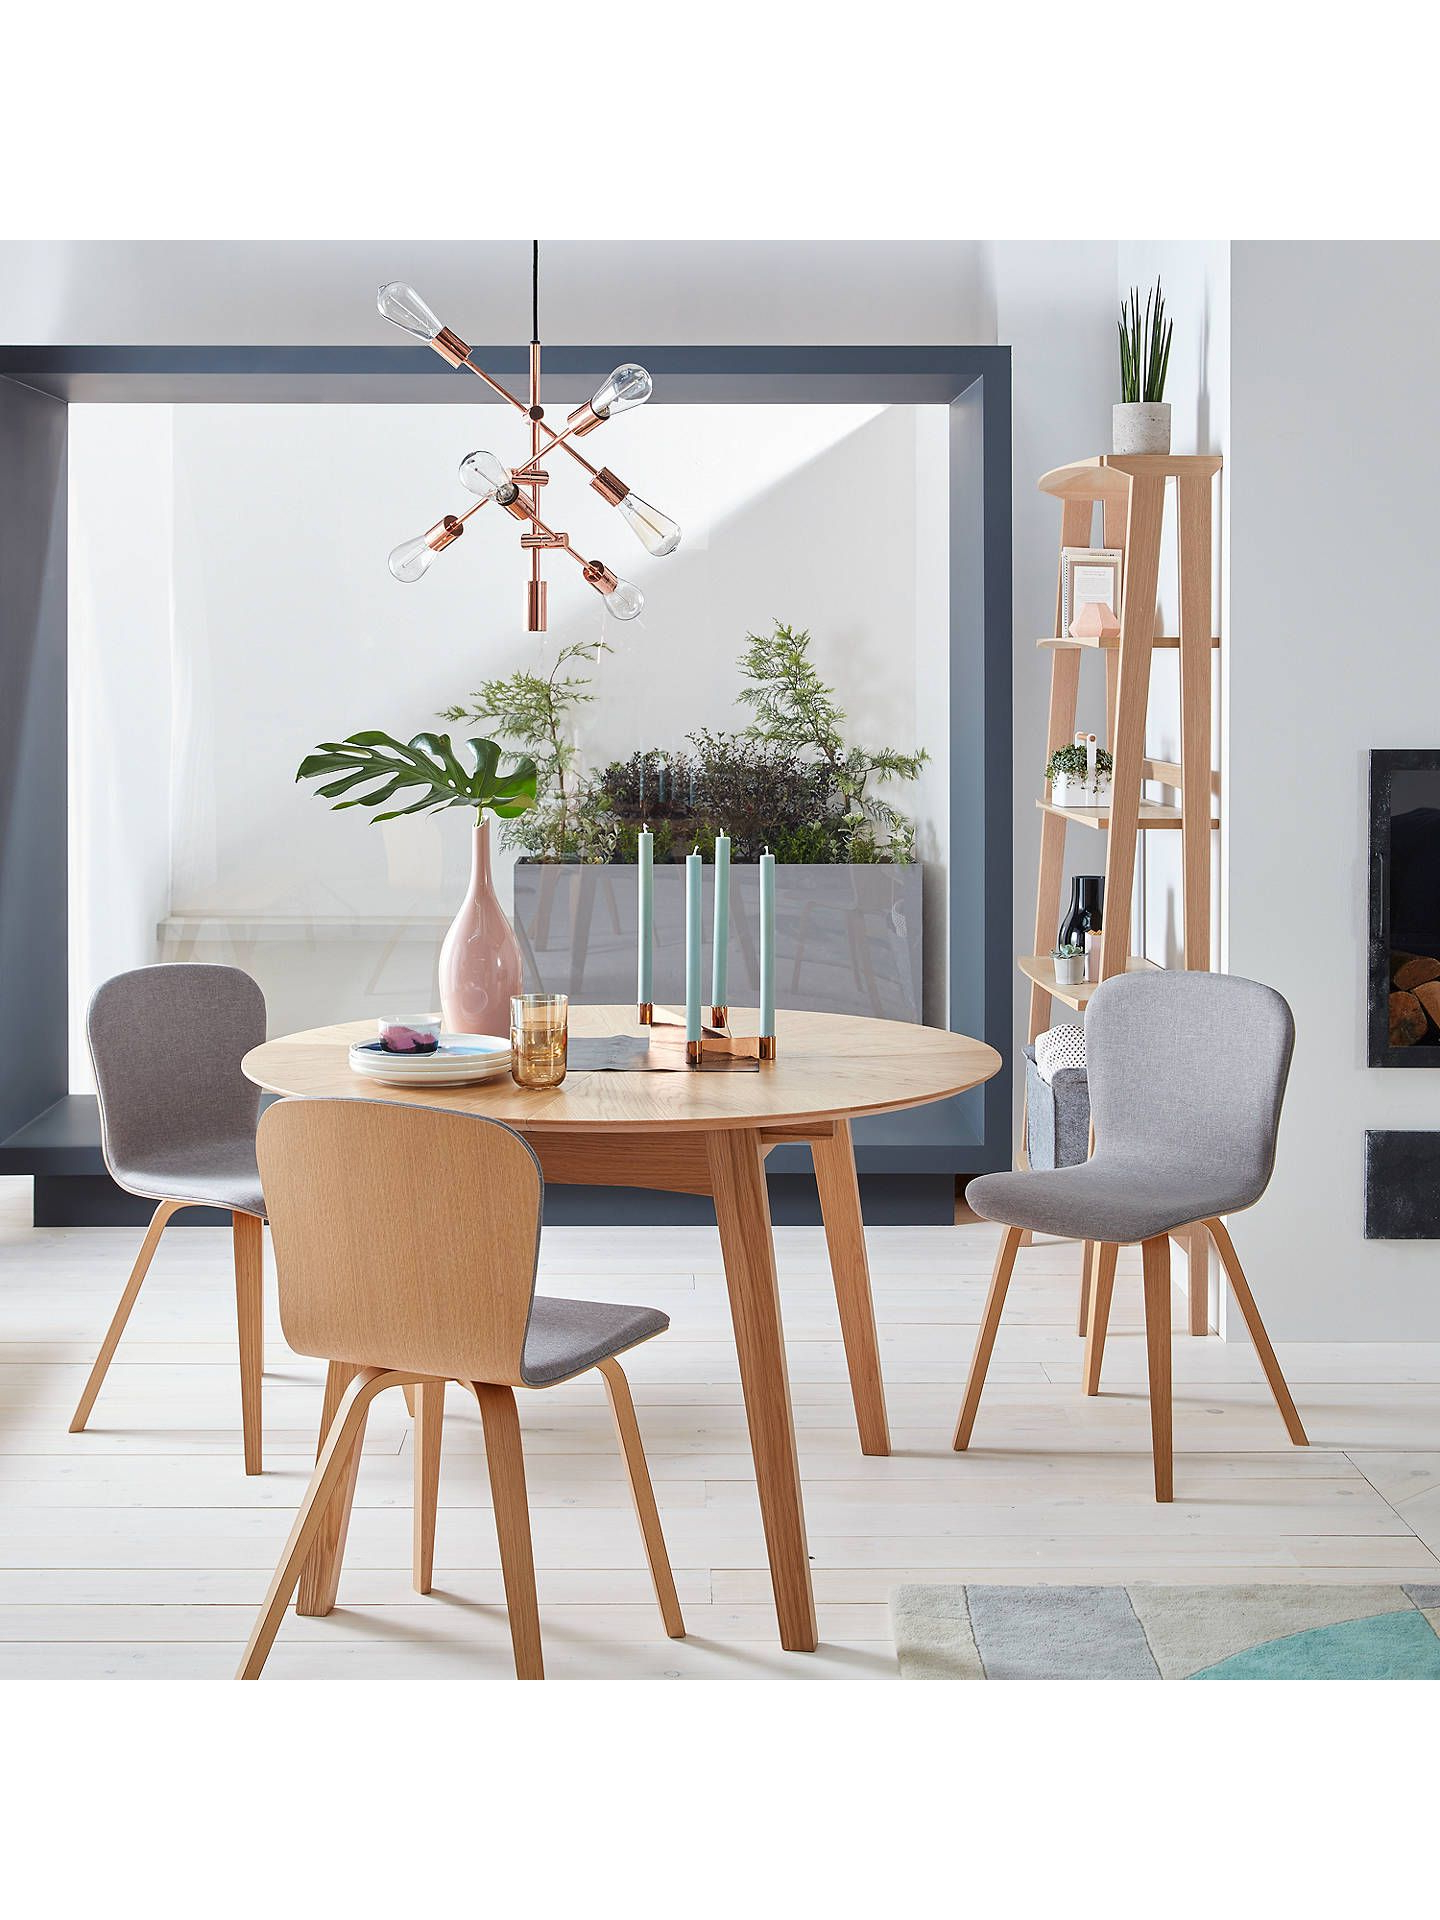 John Lewis & Partners Duhrer 4 6 Seater Extending Round Dining Table Pertaining To Favorite John 4 Piece Dining Sets (Gallery 6 of 25)